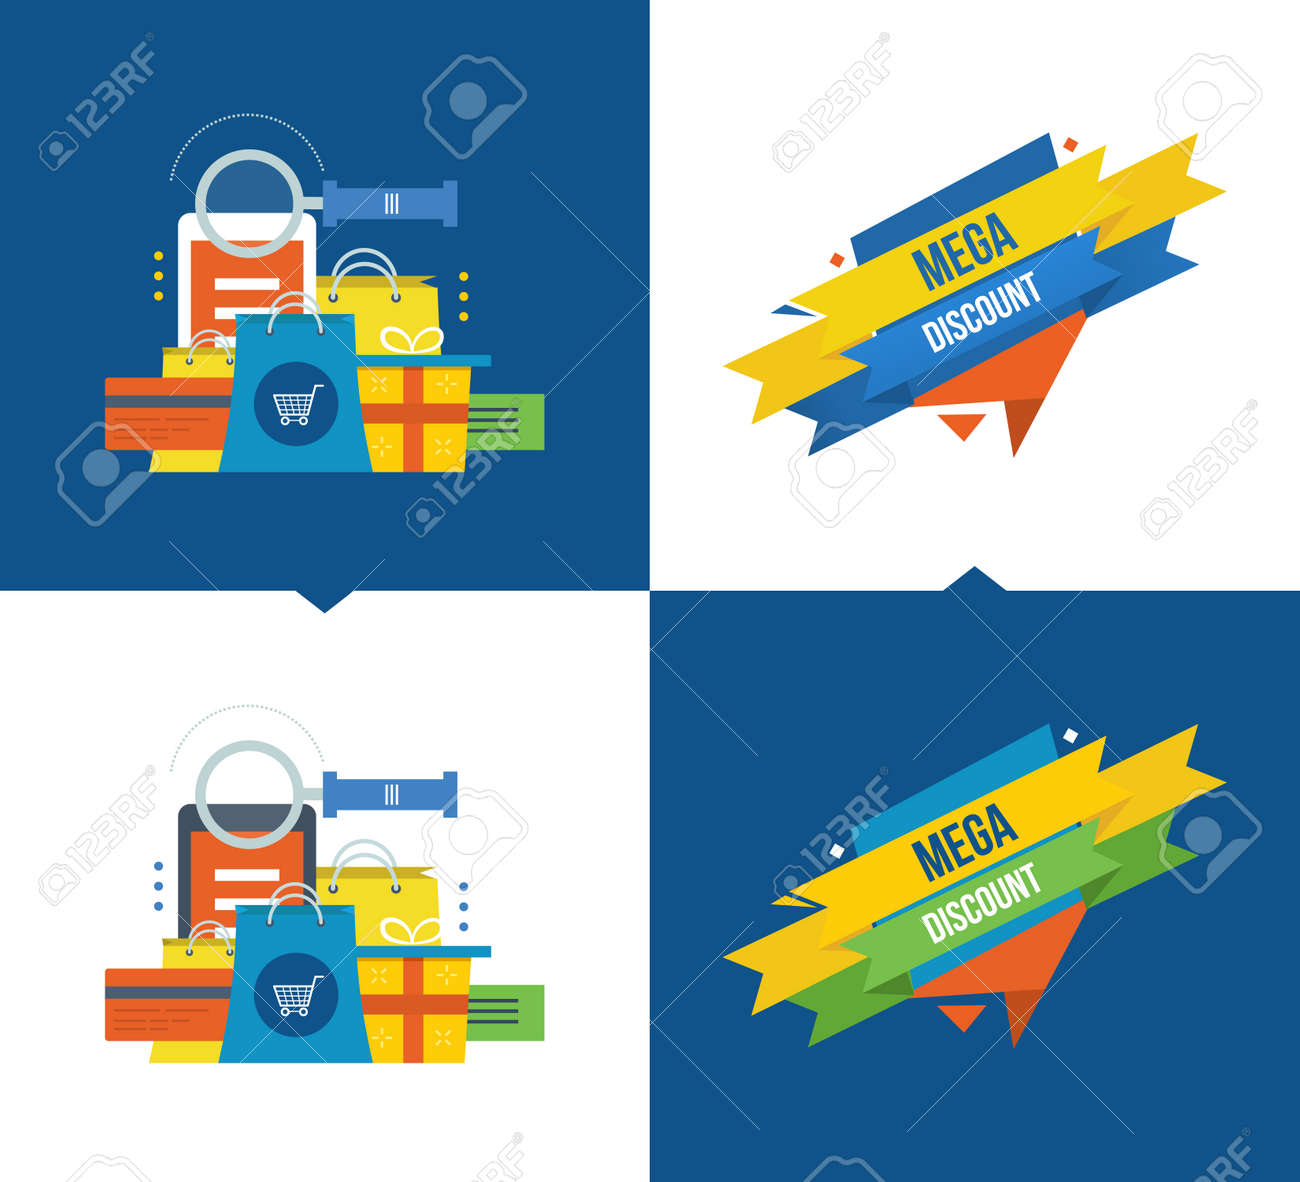 Concept illustration - methods of payment and online shopping,